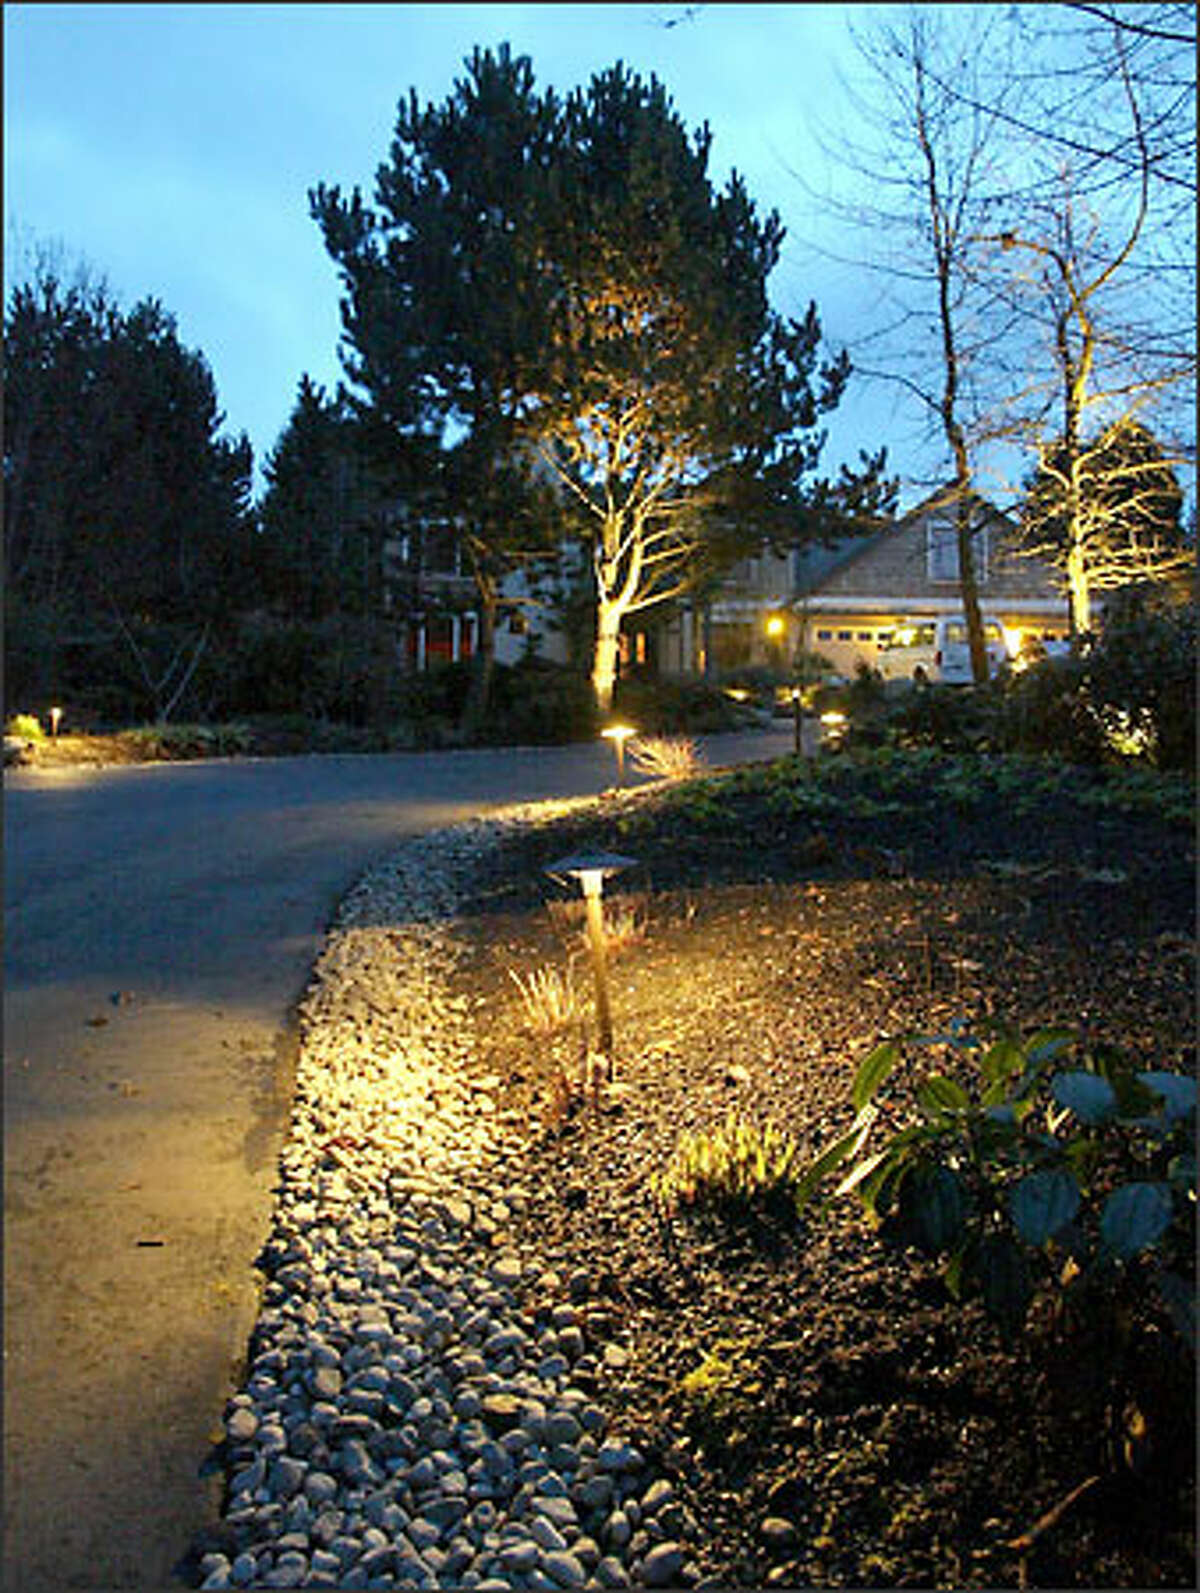 More low-voltage lighting along the main driveway of the Ager home provides safety illumination as well as artistic effects. The lighting layout was created by the designers at Yard Moods in Monroe.